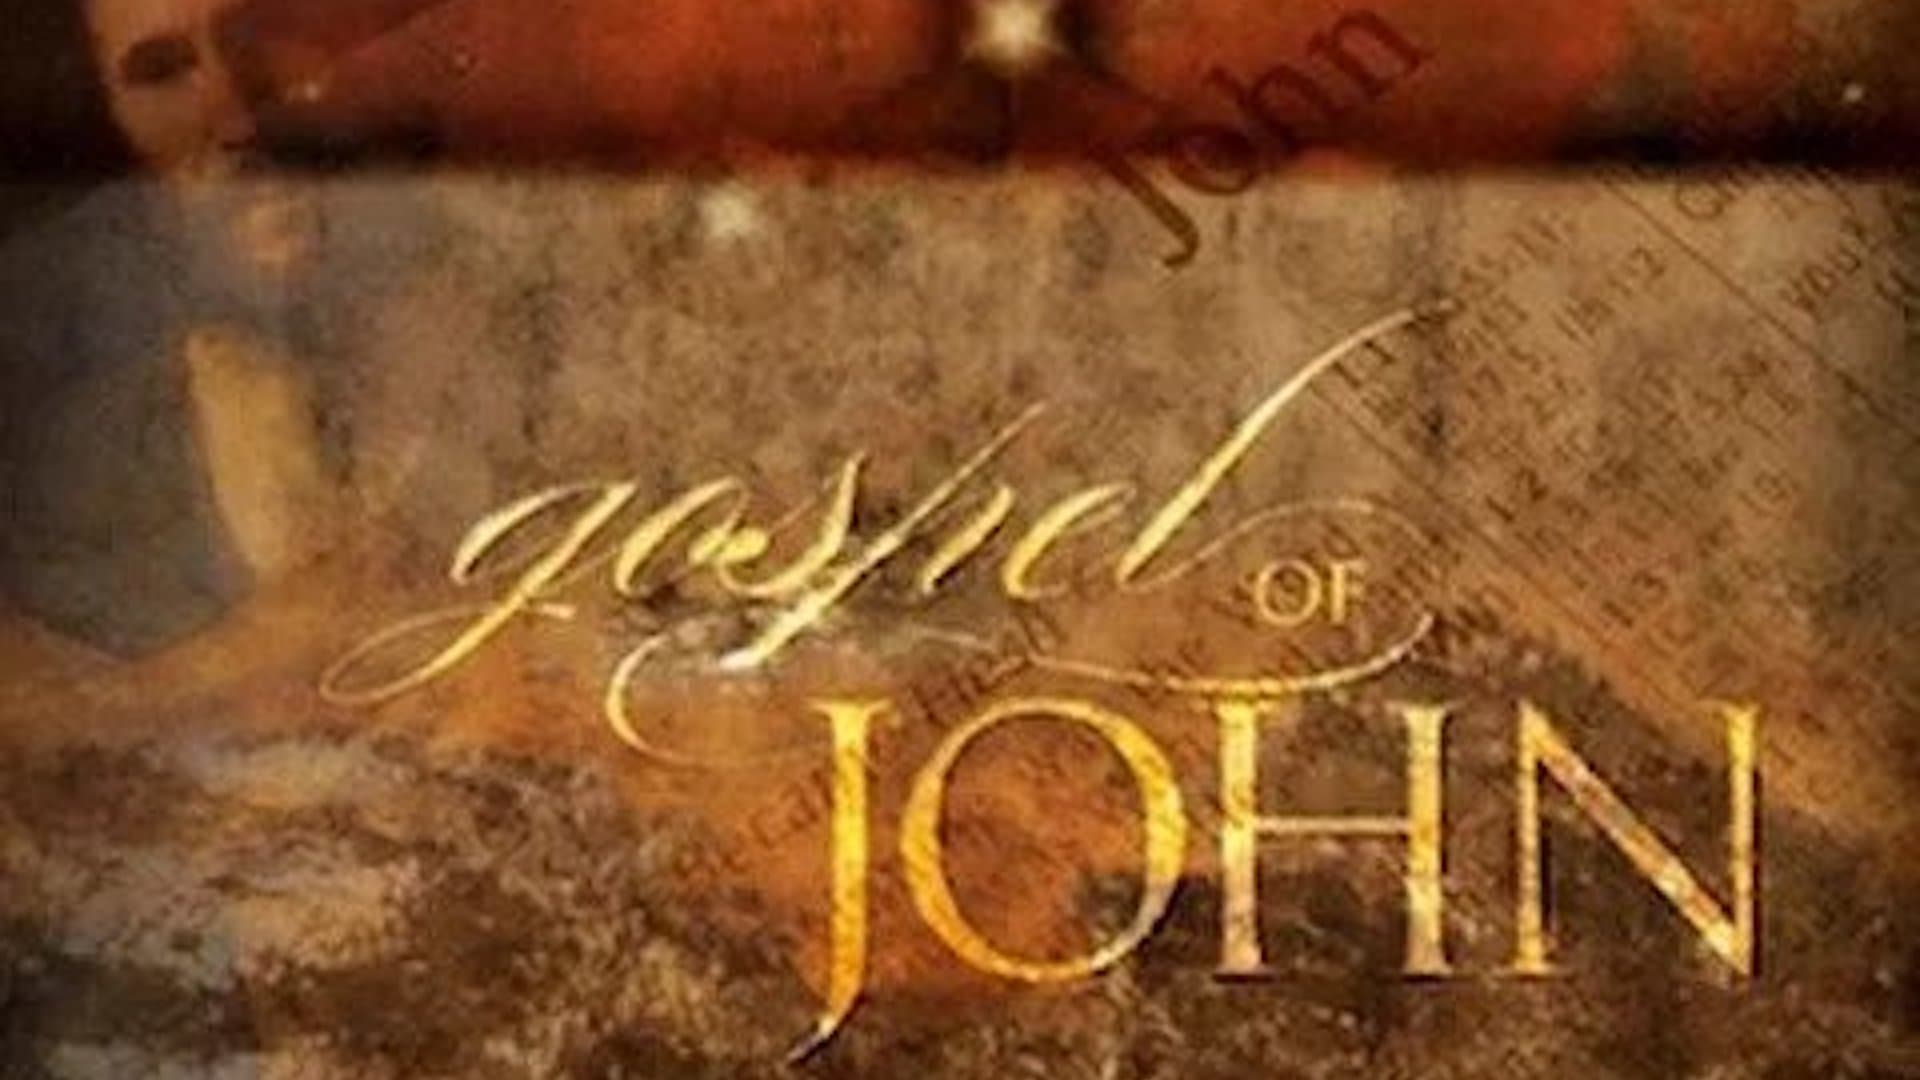 Gospel of John: Thirst / John 4:1-26